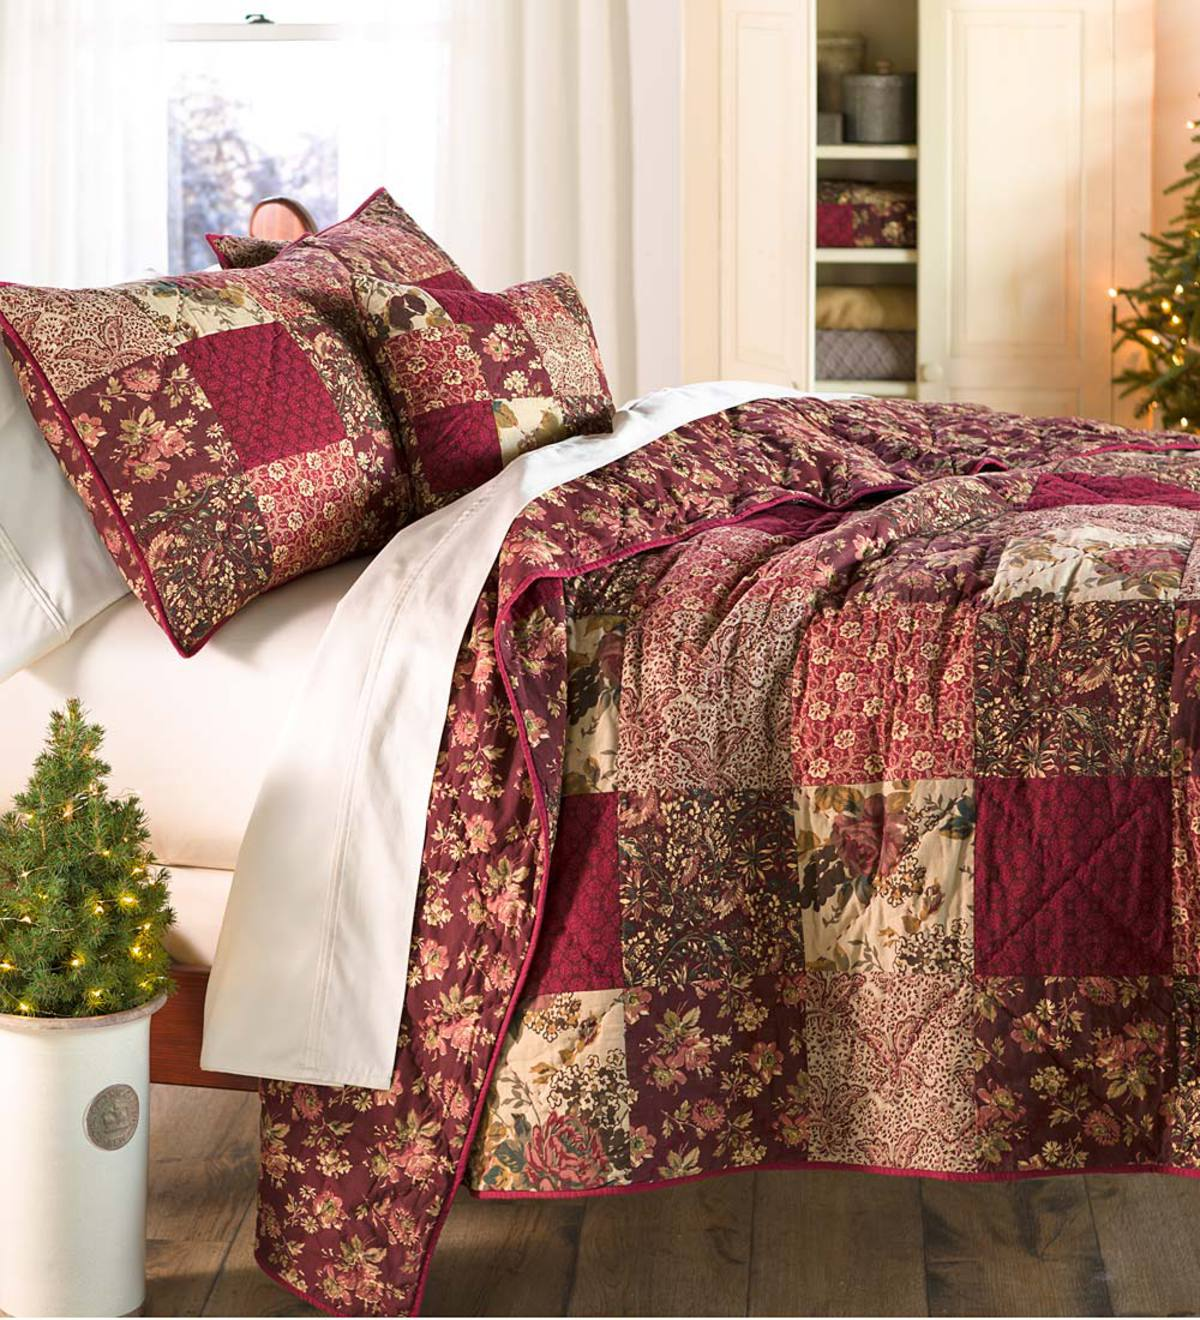 Cranberry Floral Patchwork Quilt Set